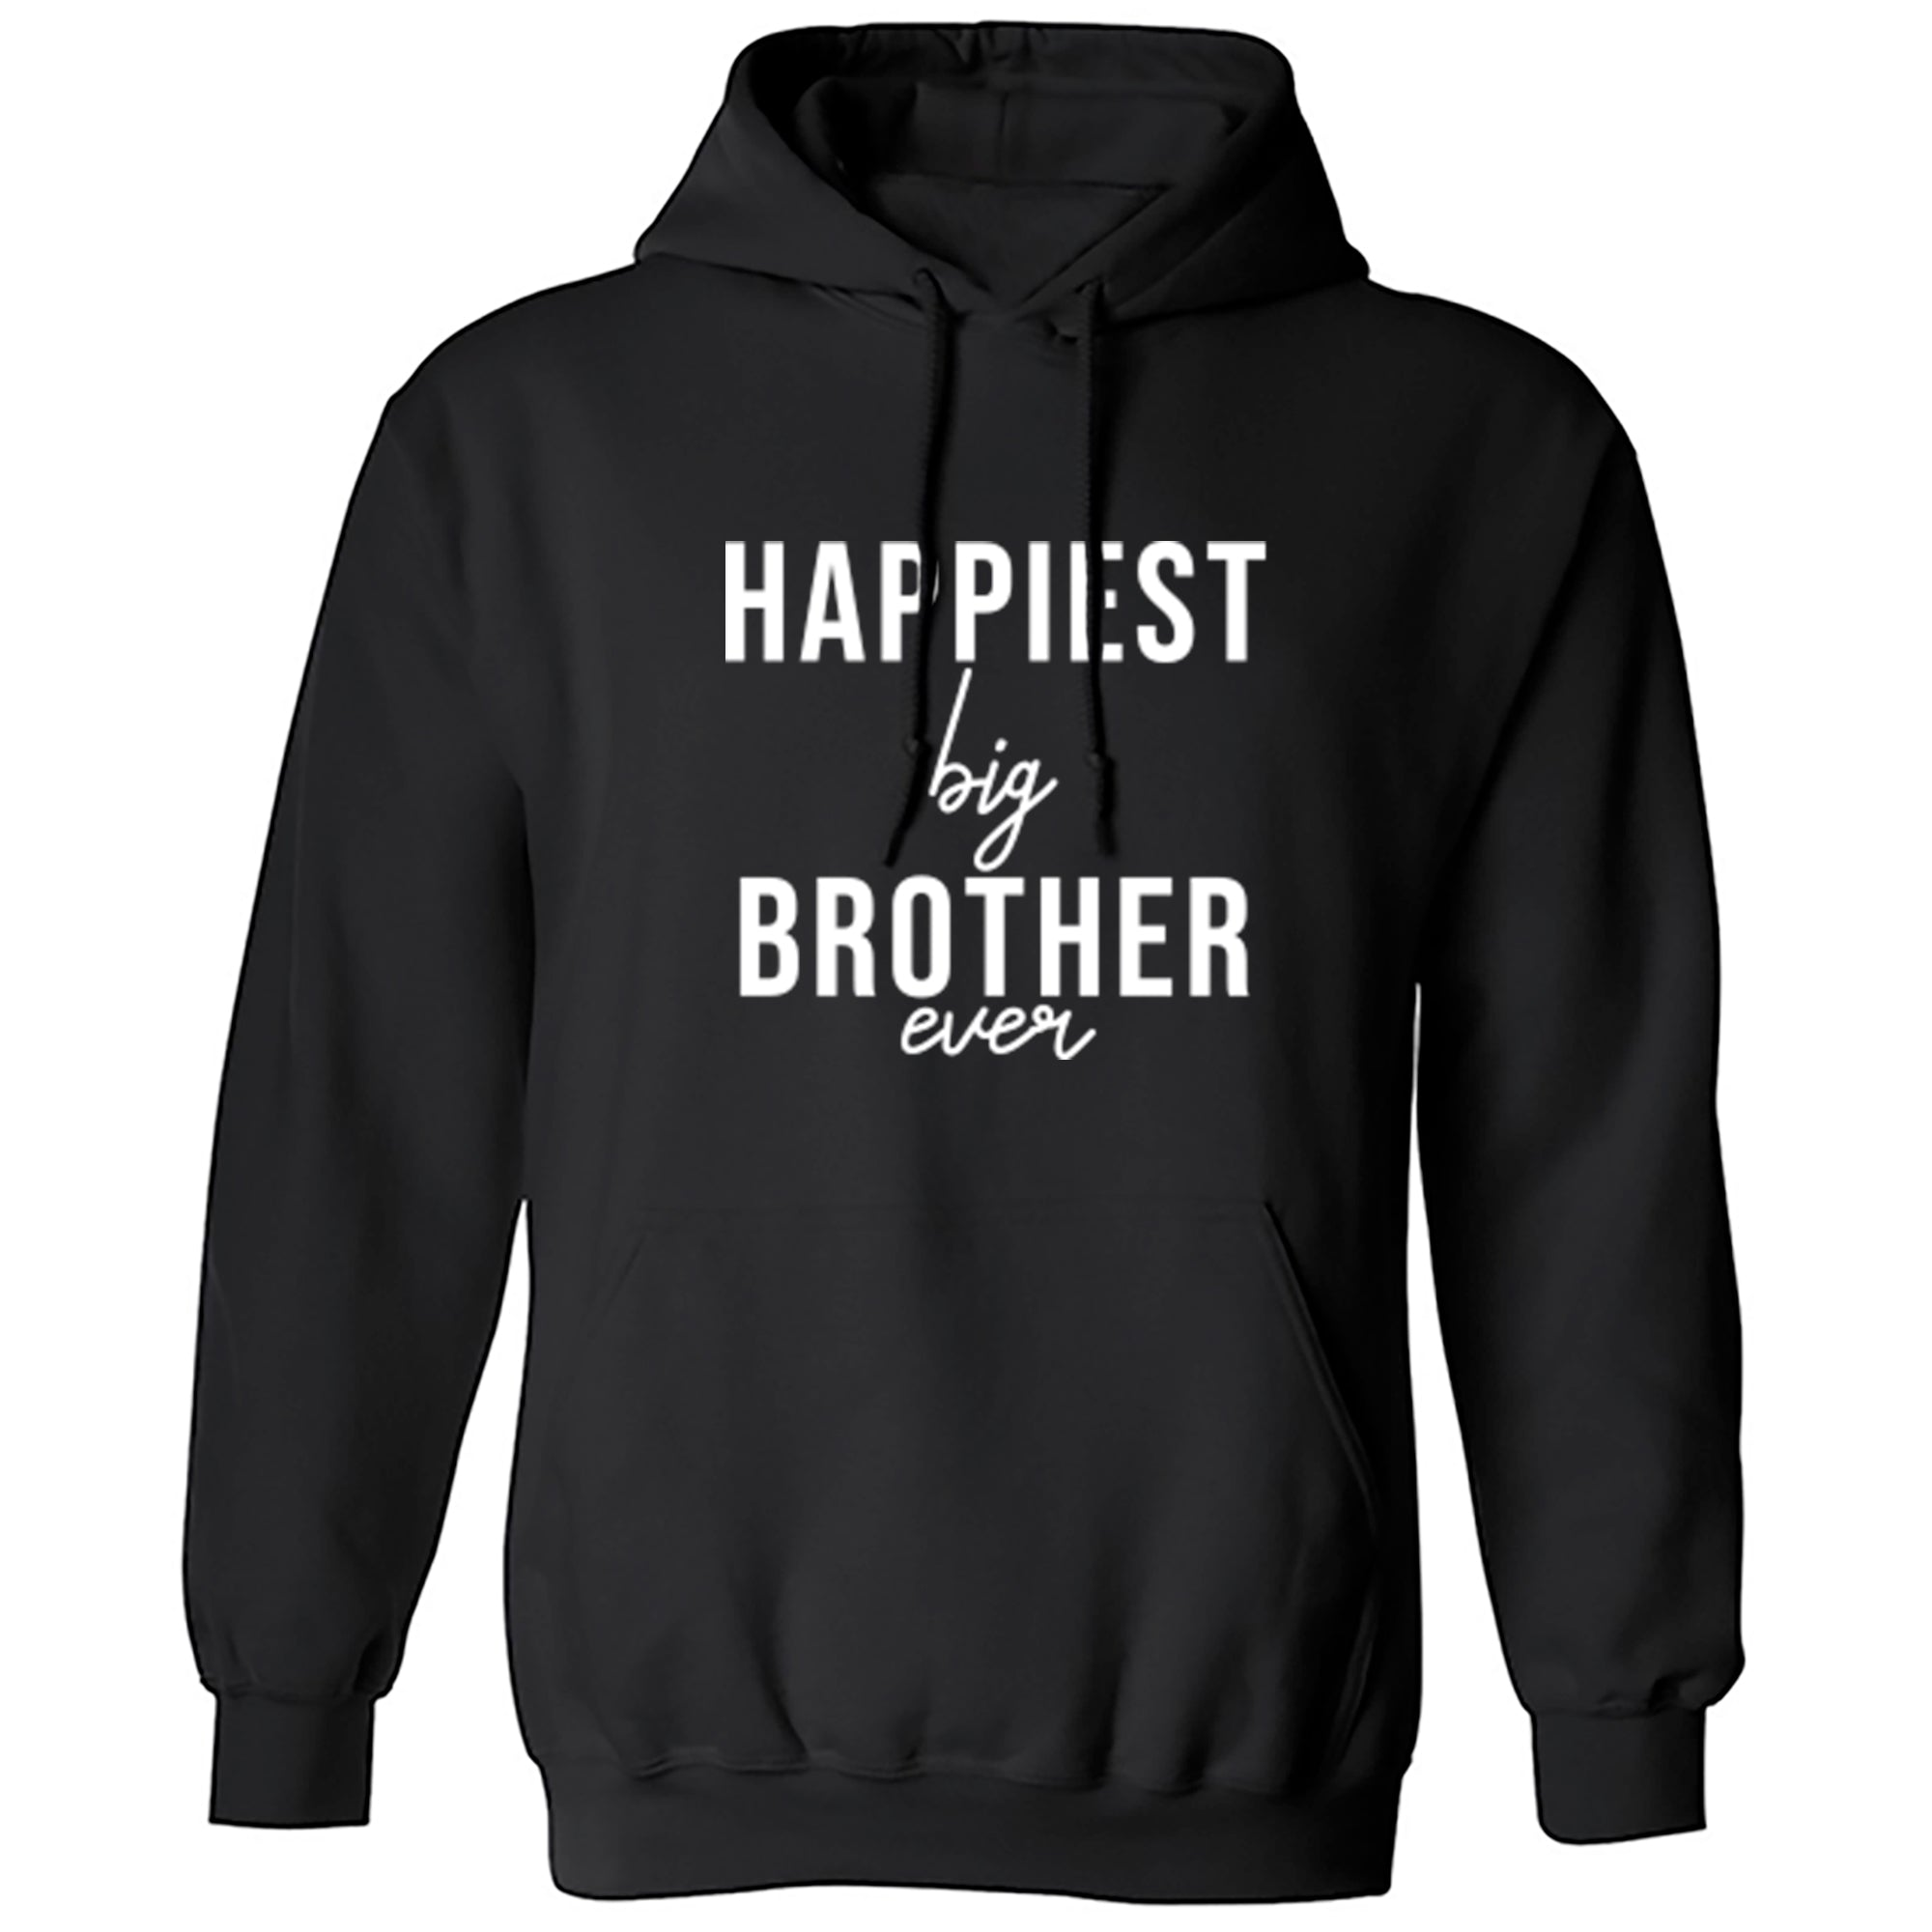 Happiest Big Brother Ever Unisex Hoodie S0527 - Illustrated Identity Ltd.